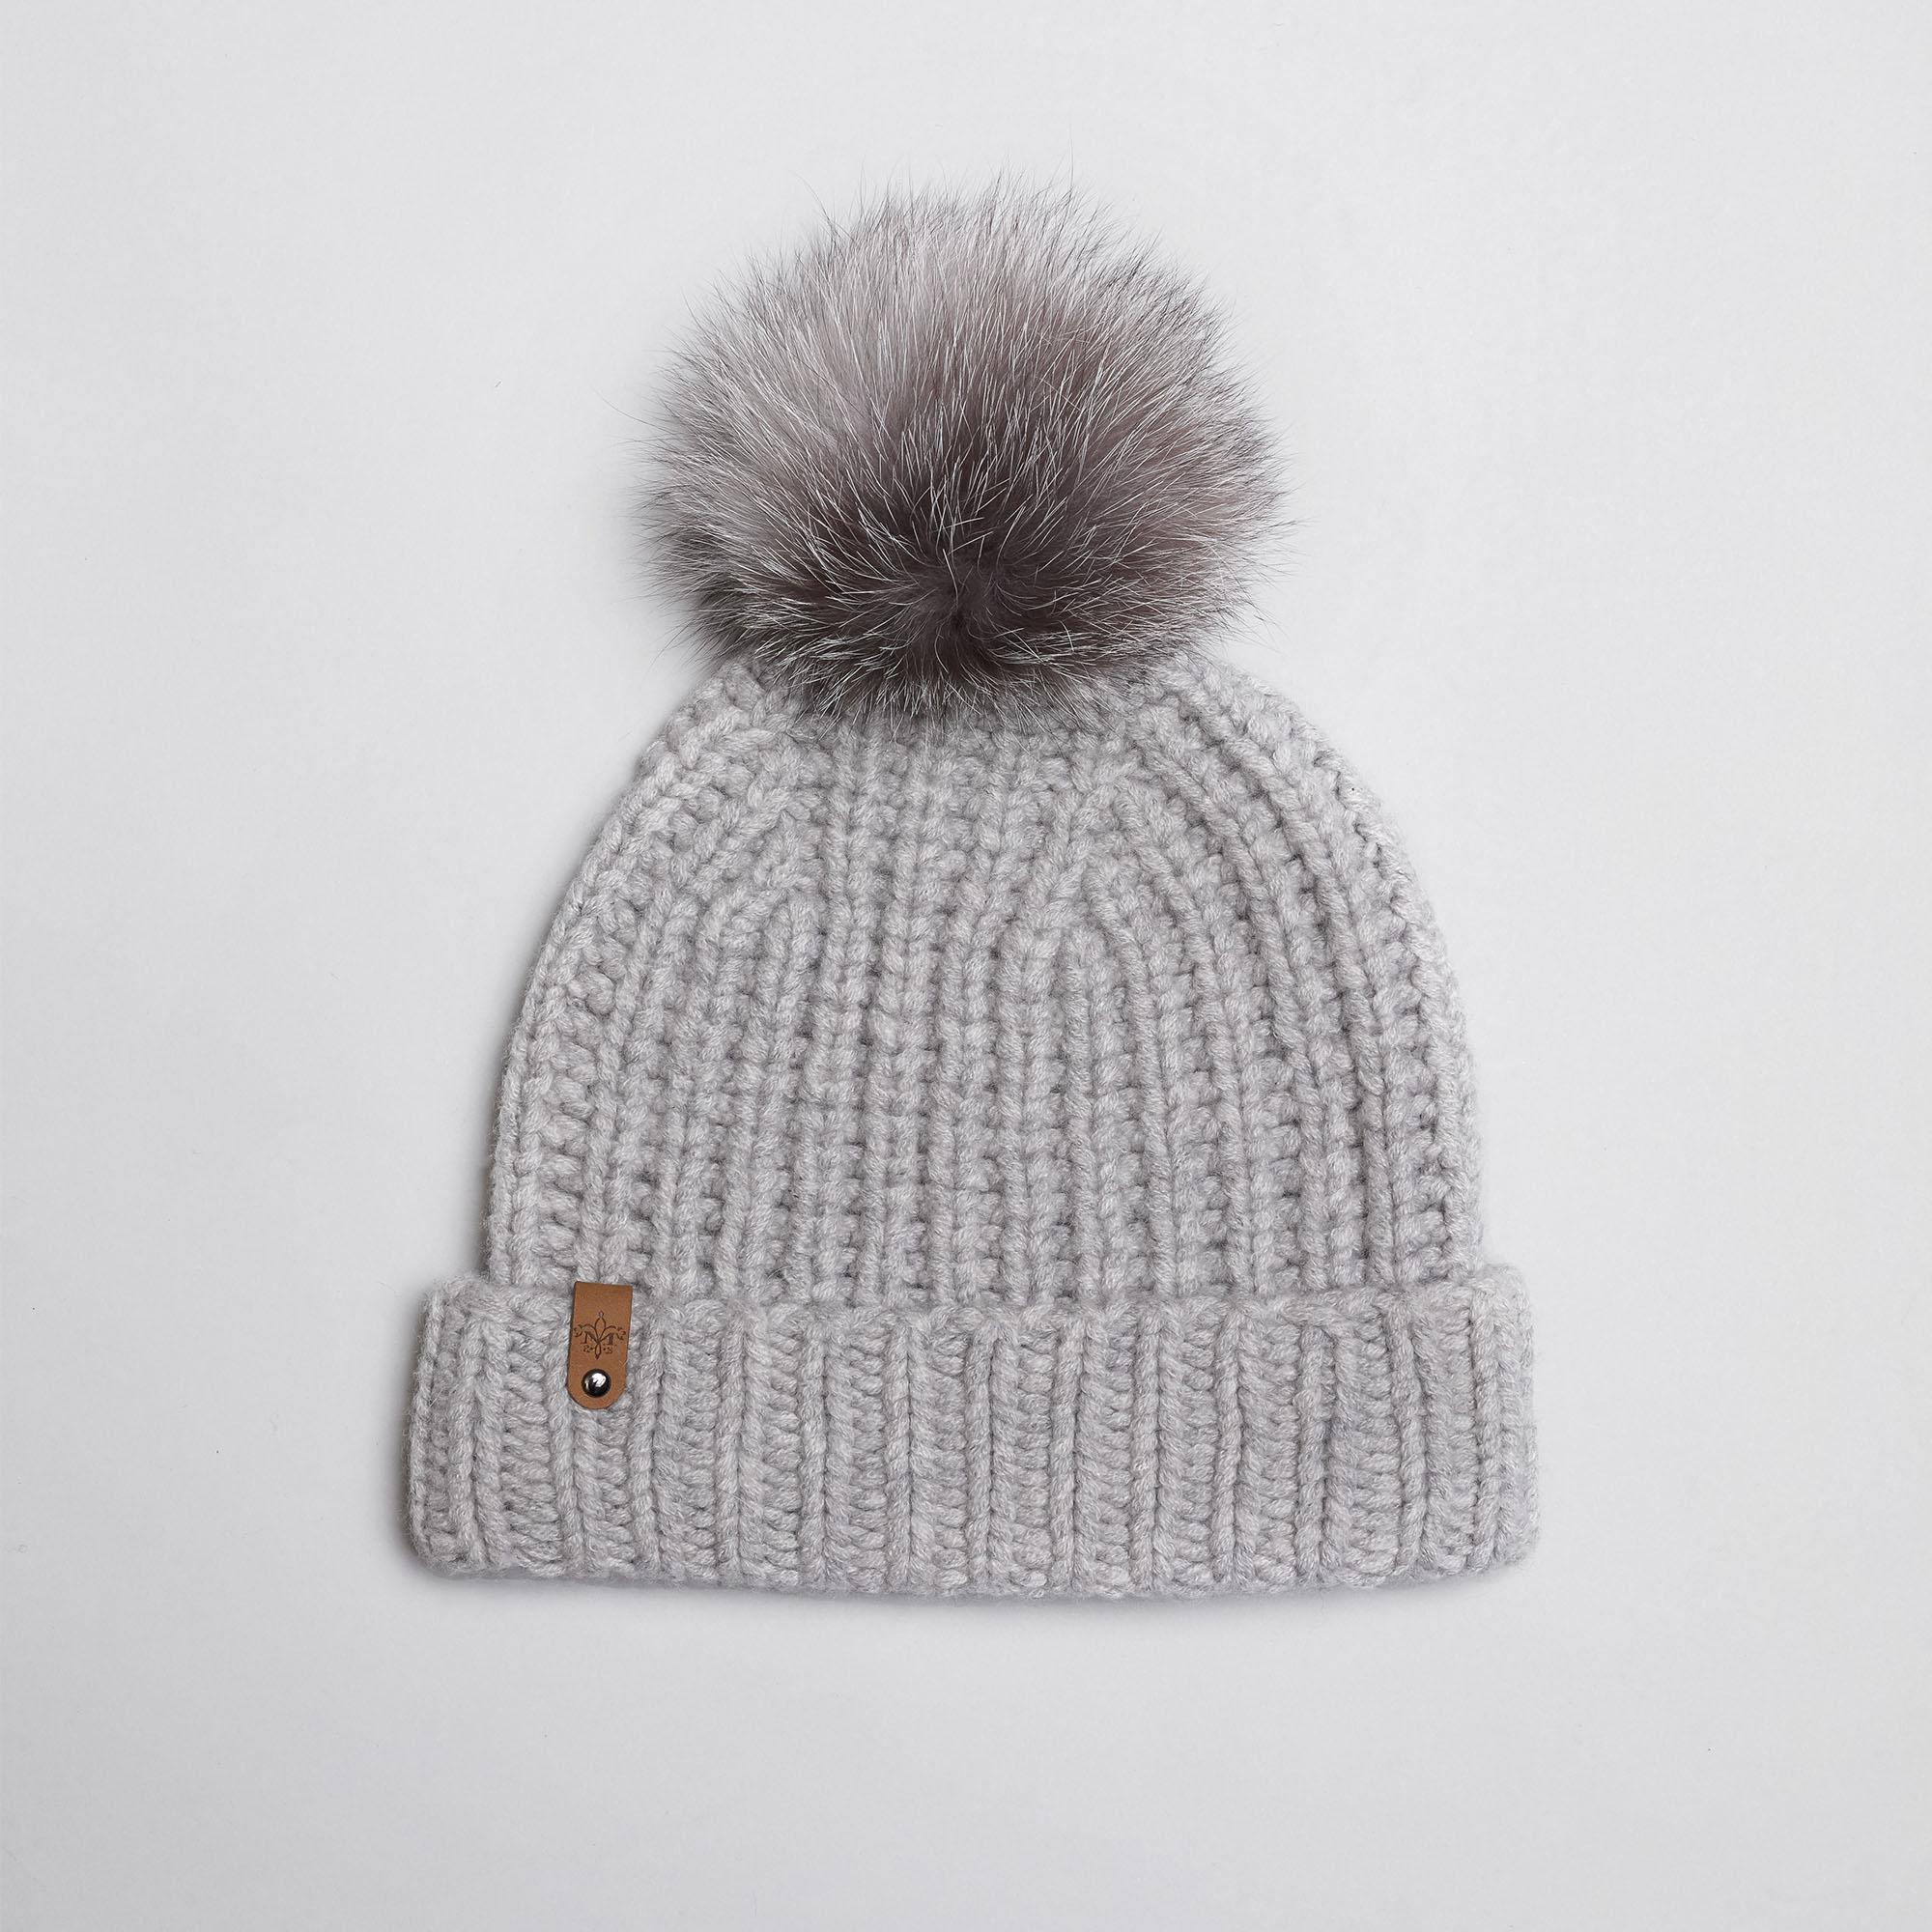 a7de356580729d Mackage Doris Cashmere Knit Hat With Fur Pompom - Light Grey - O/s ...